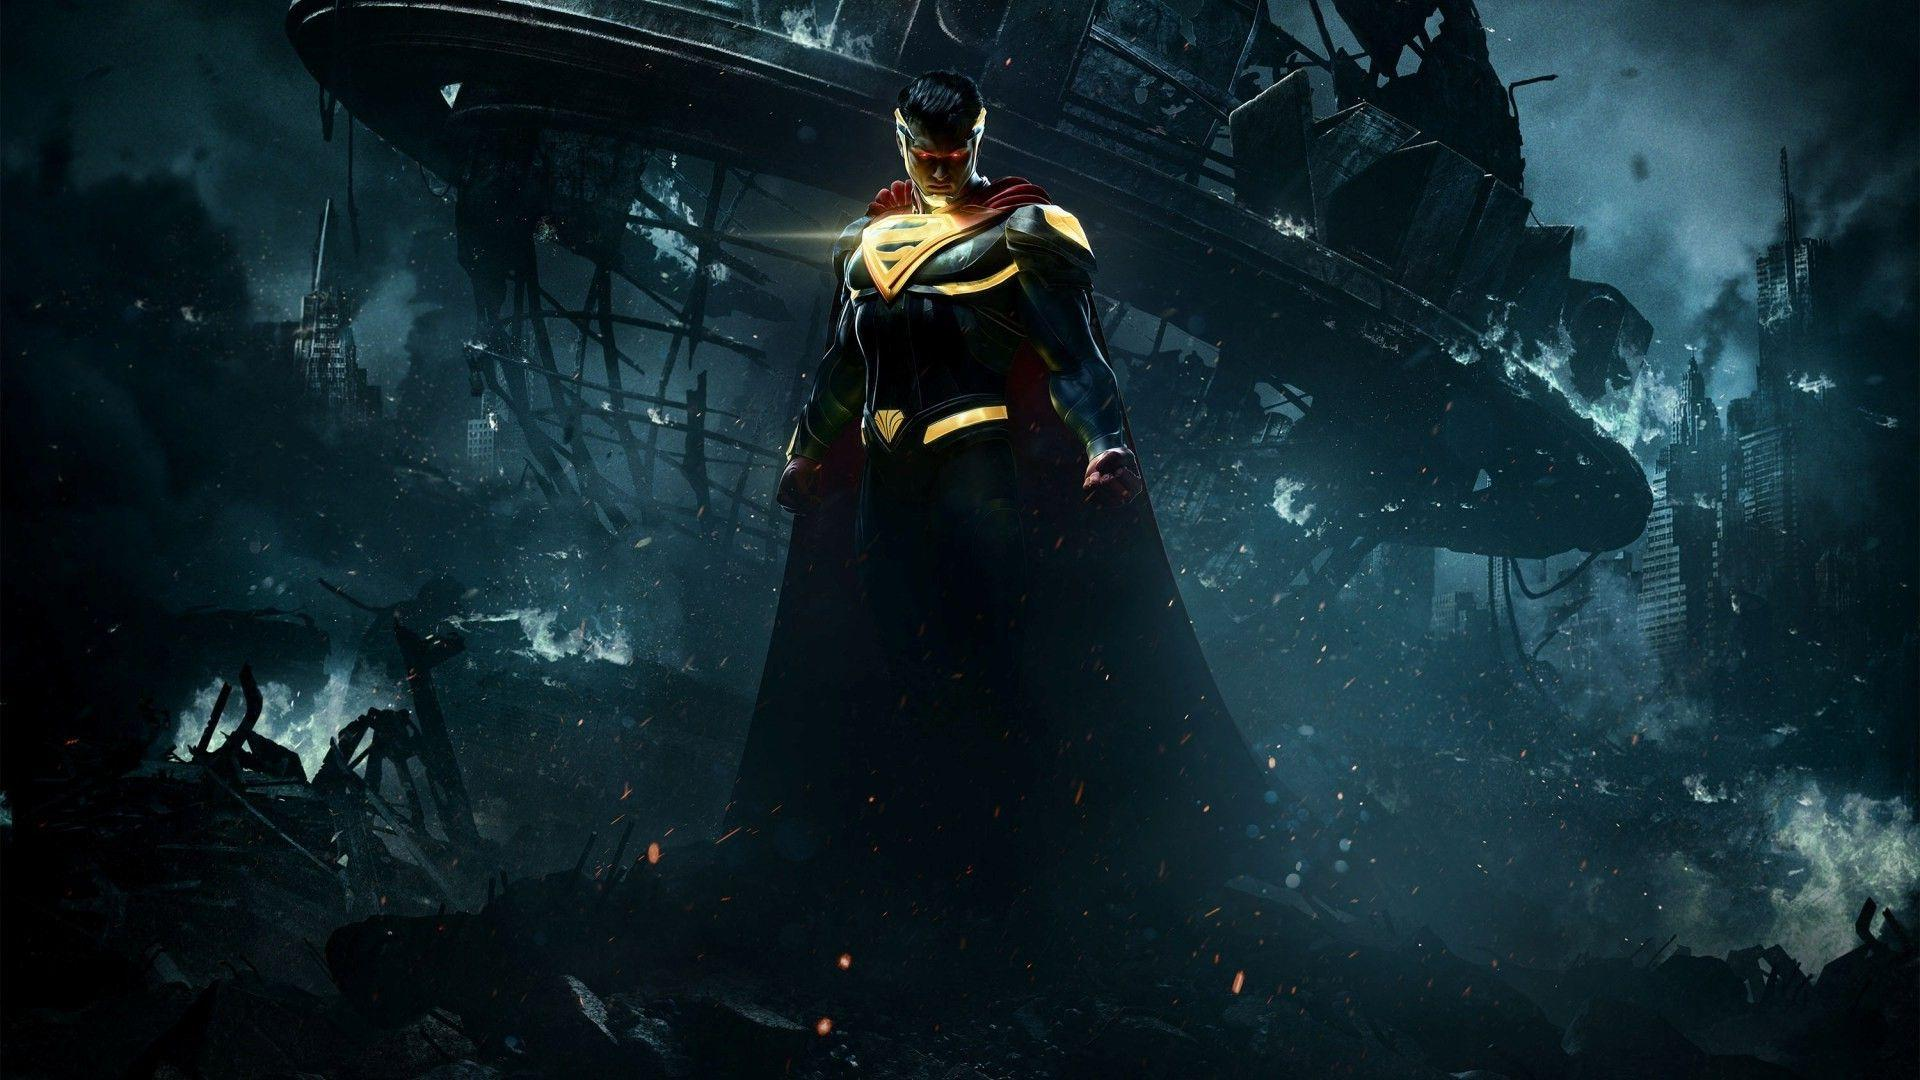 Injustice 2 Superman Hd Games 4k Wallpapers Images: Injustice 2 Wallpapers